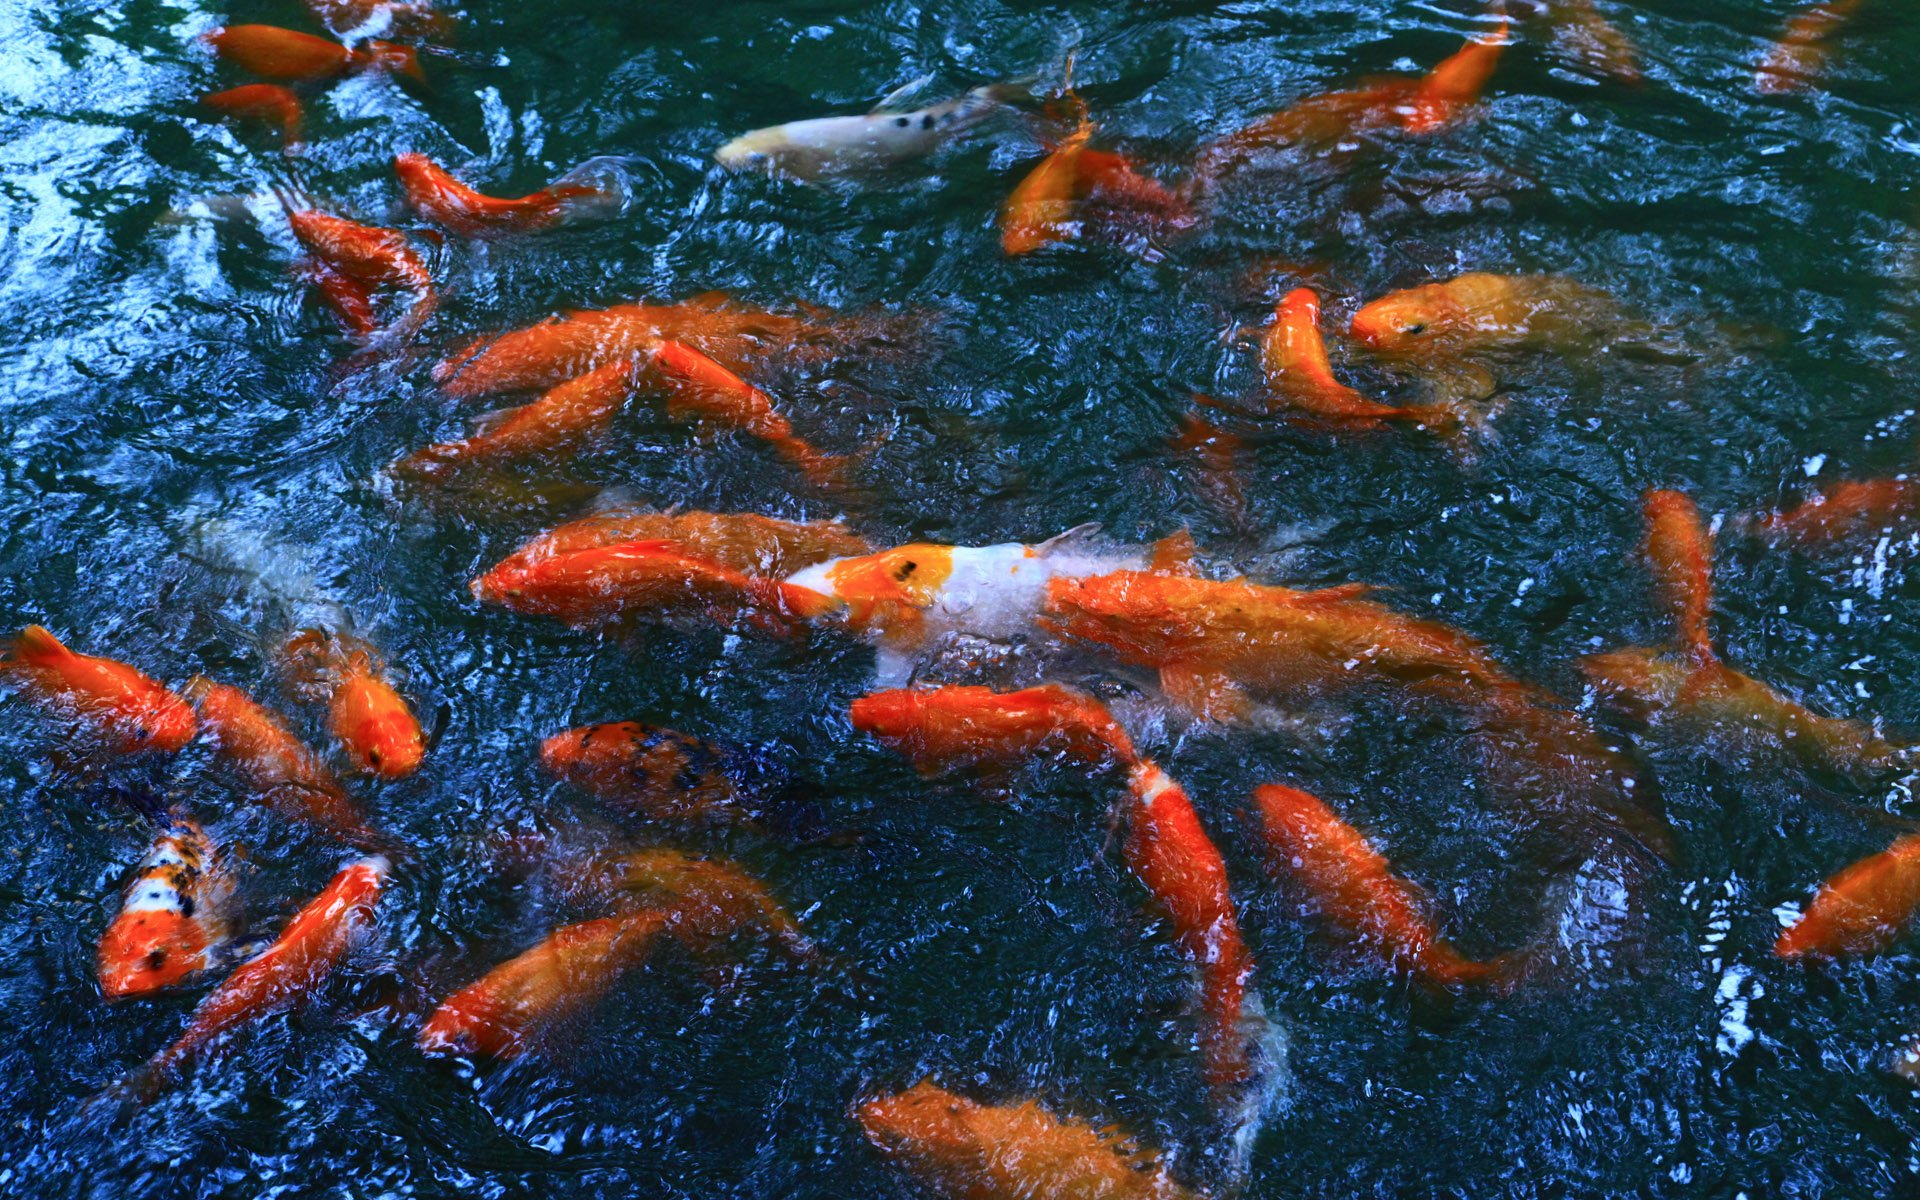 Koi hd wallpaper background image 1920x1200 id - Carp wallpaper iphone ...